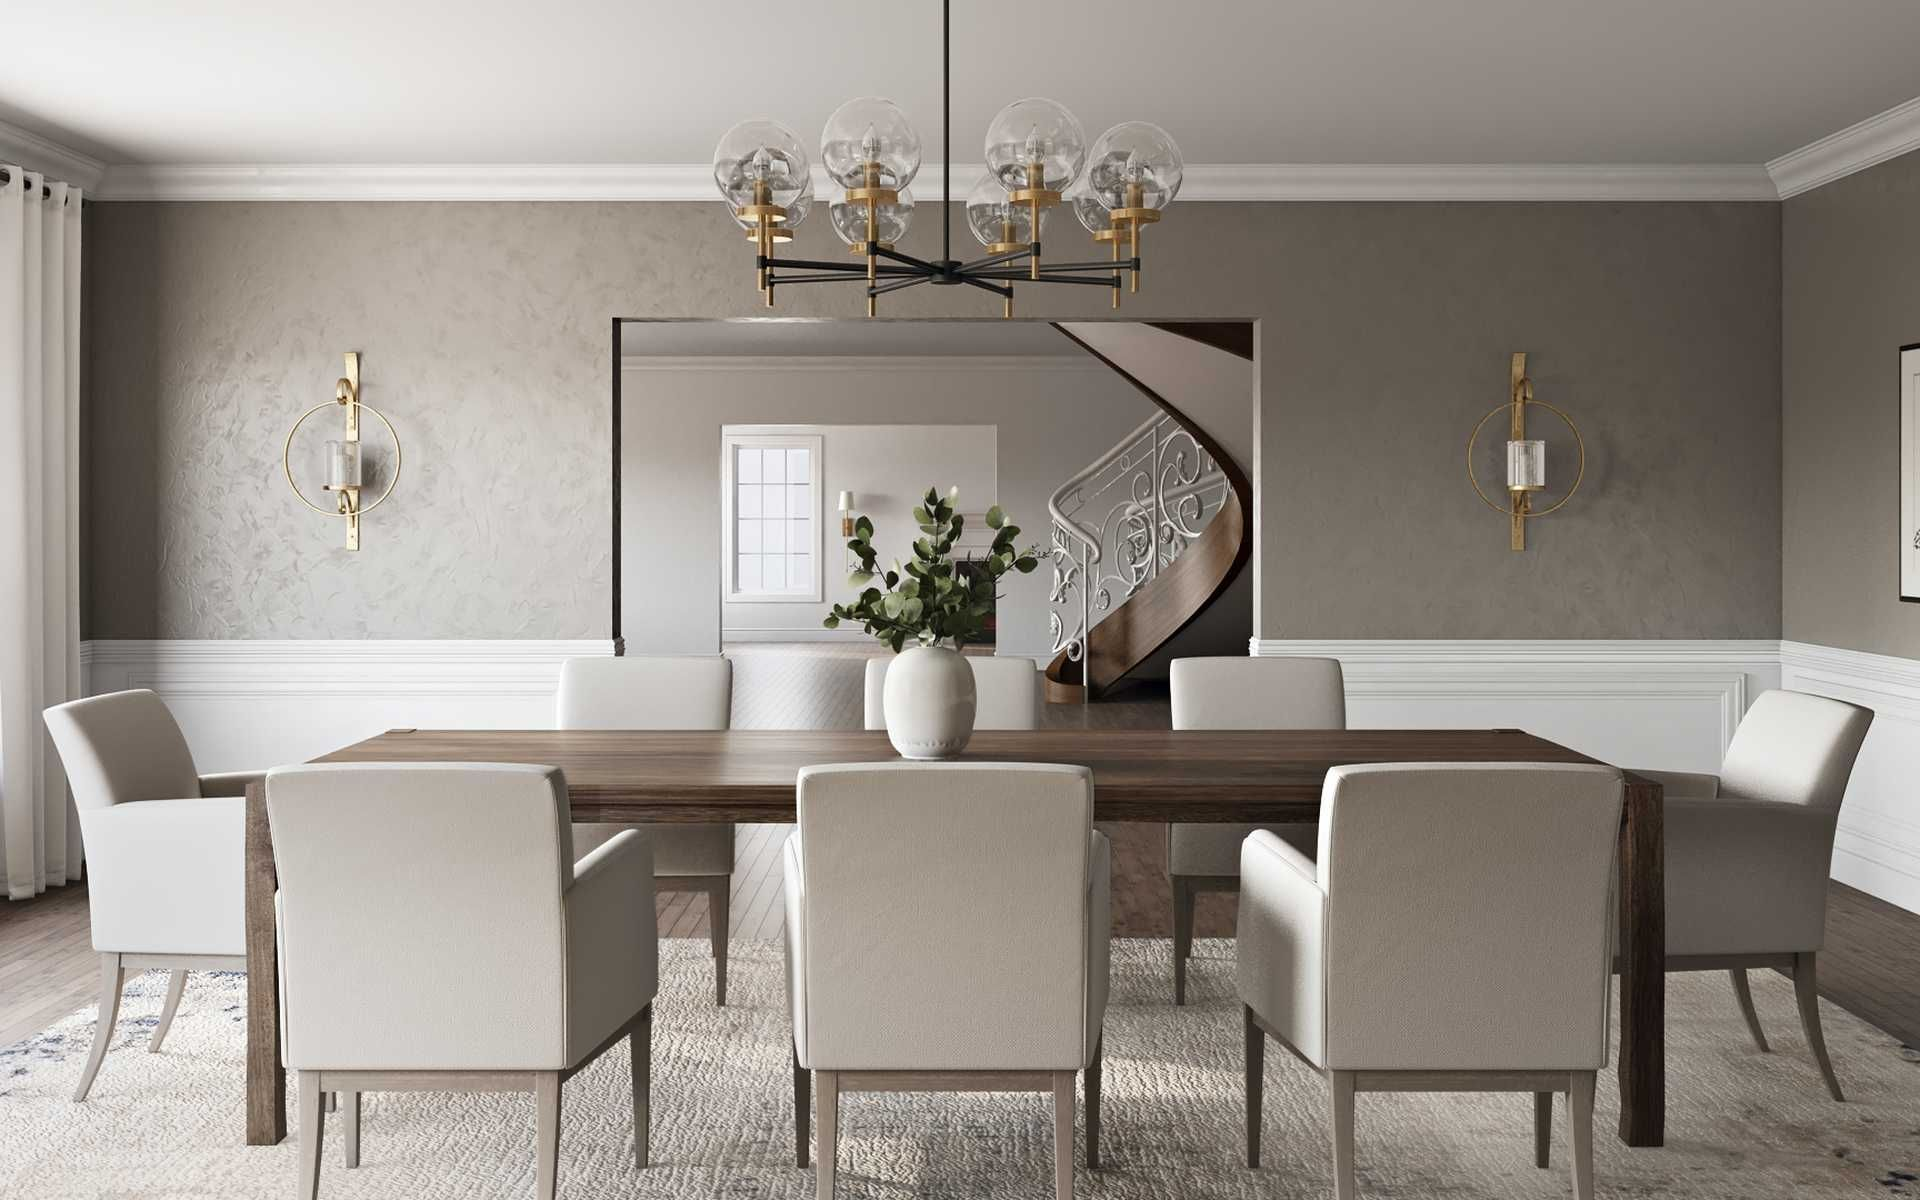 Contemporary Modern Classic Transitional Dining Room Design By Havenly Interior De Classic Dining Room Interior Design Dining Room Dining Room Design Modern